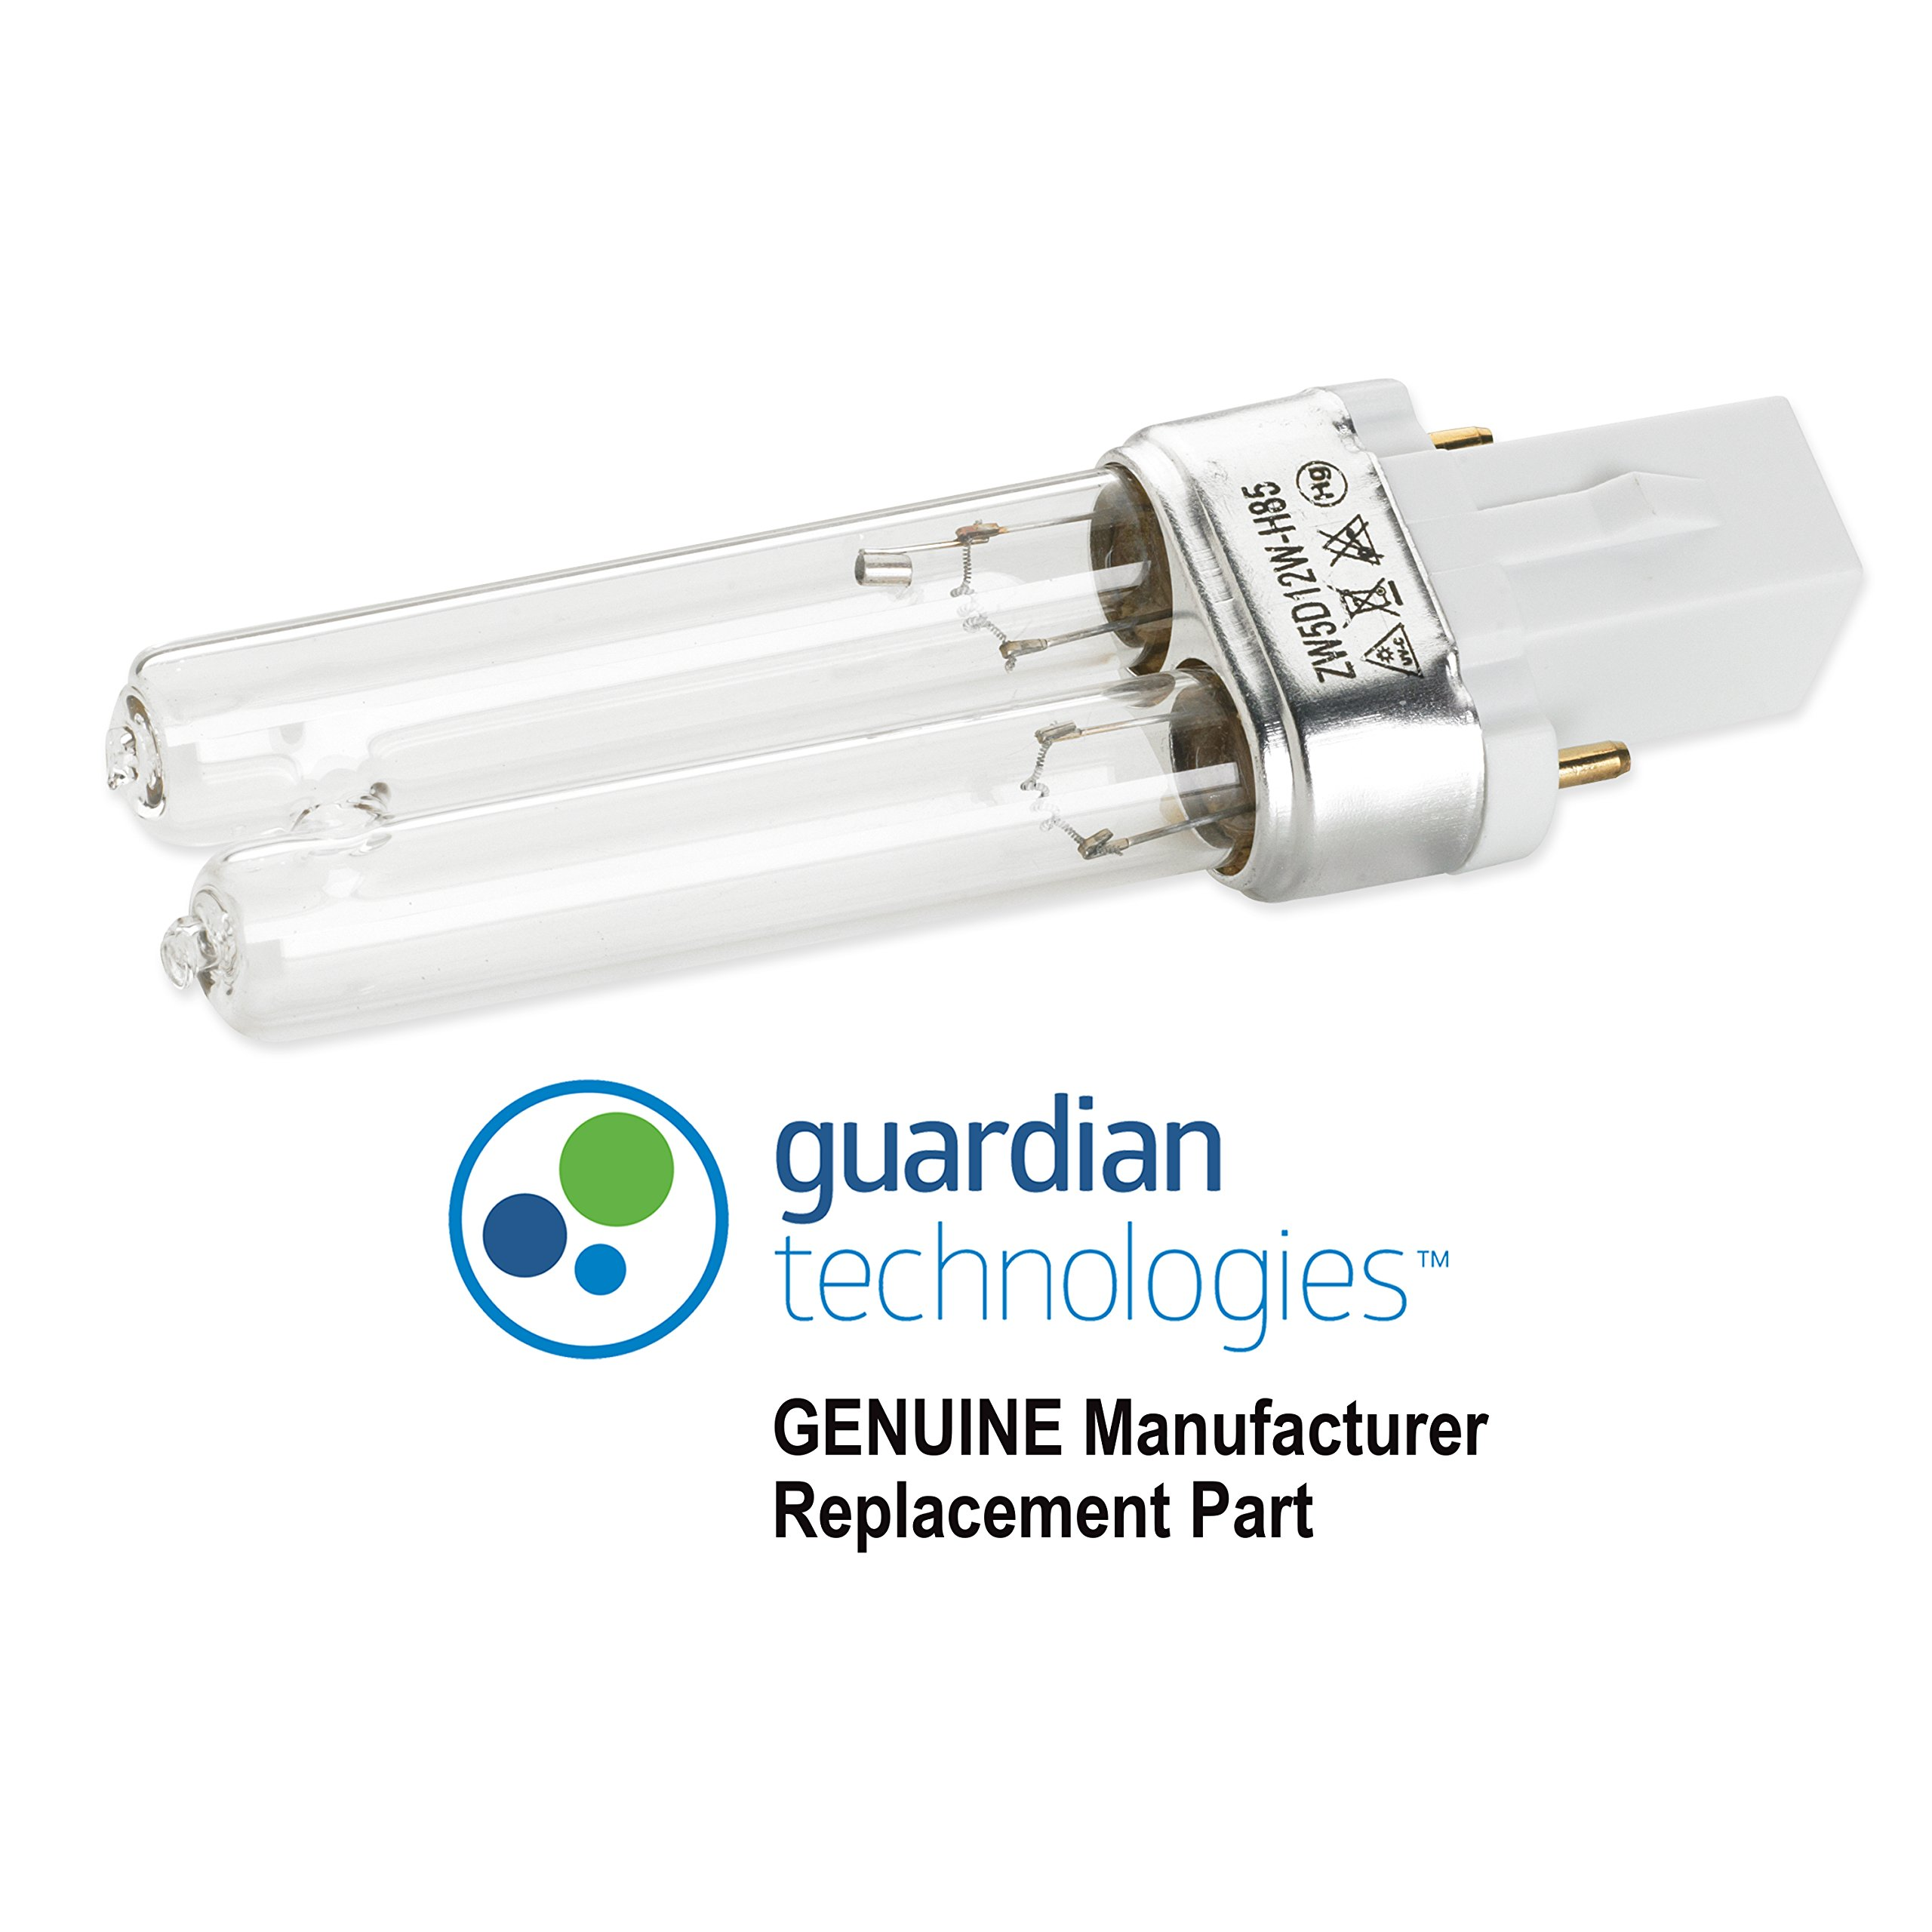 GermGuardian LB4000 GENUINE UV-C Replacement Bulb for AC4300BPTCA, AC4825, AC4850PT & AC4900CA Germ Guardian Air Purifiers